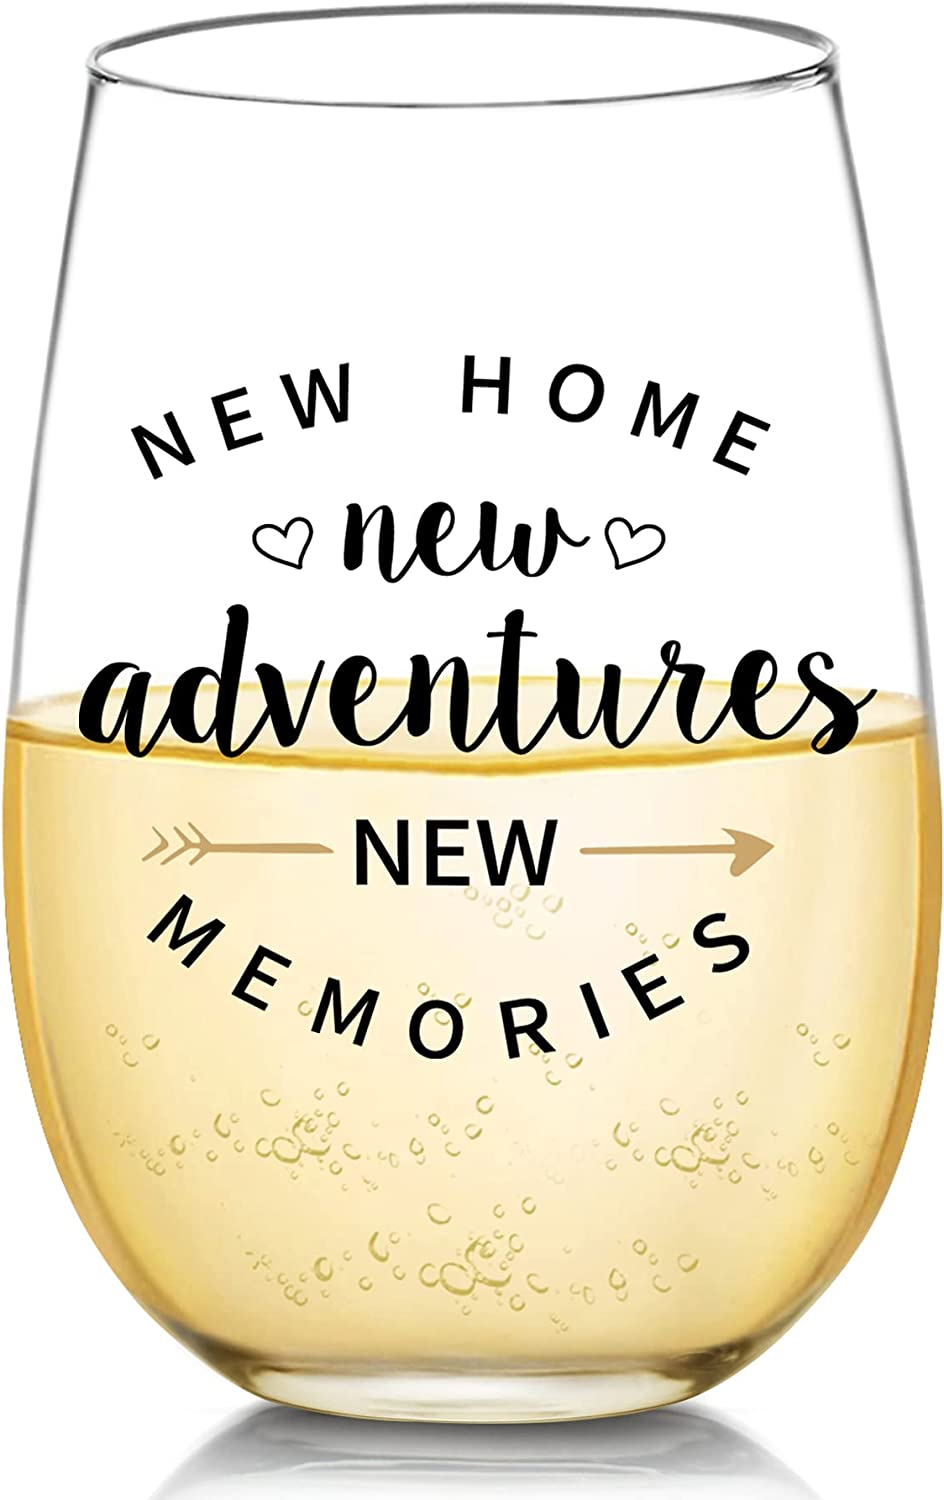 Housewarming Gifts for New Home - New Home New Adventure New Memories Funny Wine Glass for New Home House Owner Friends Couple Women Men, Unique First Time House Owner Gift Ideas for Men and Women